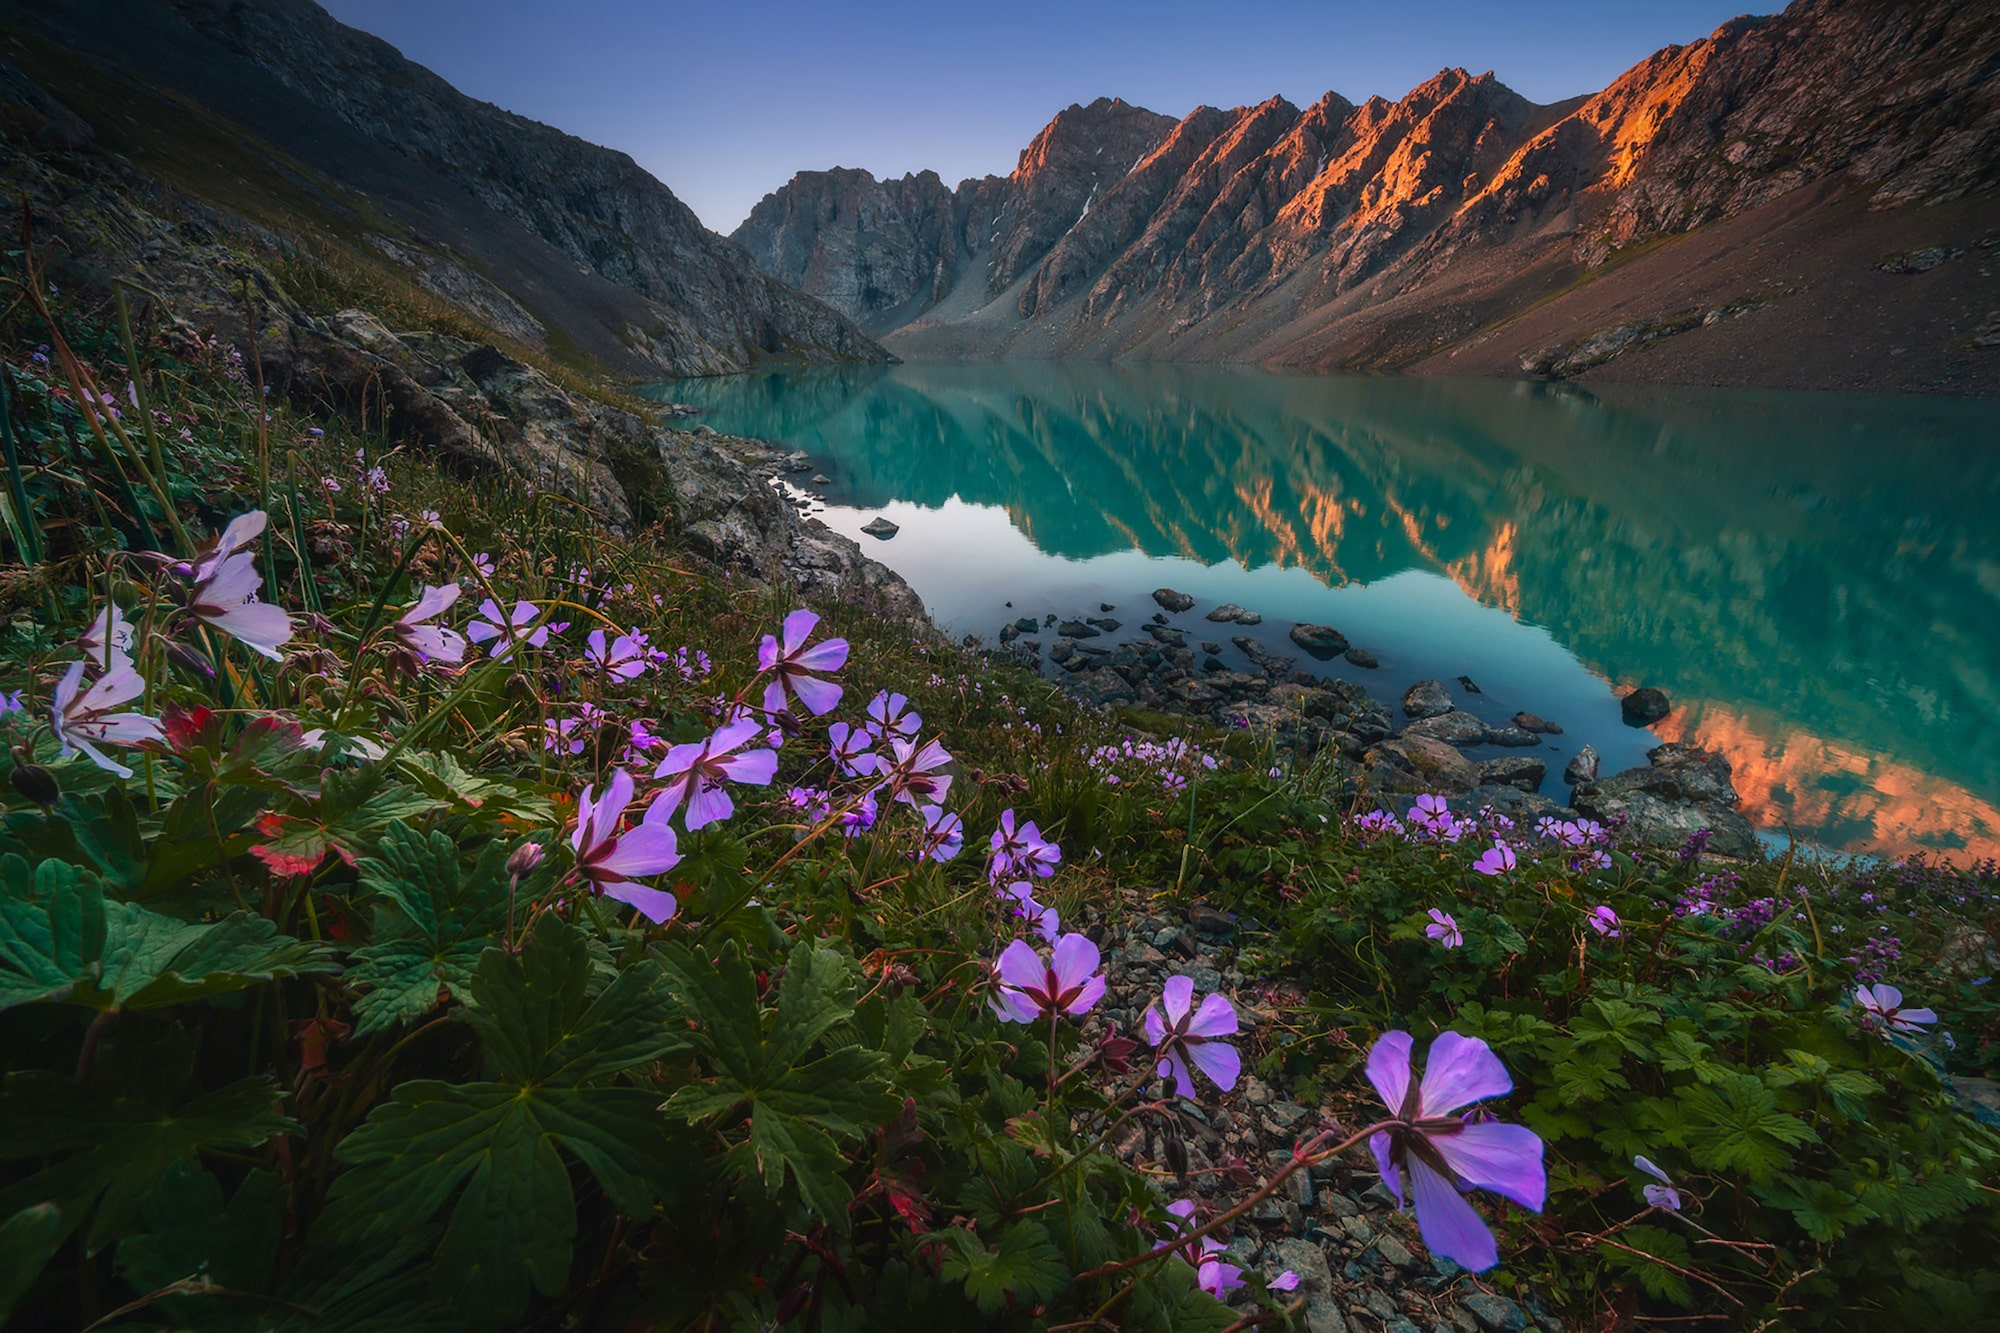 albert dros sony alpha 7RIII distant mountains reflected in a still lake with purple flowers in the foreground